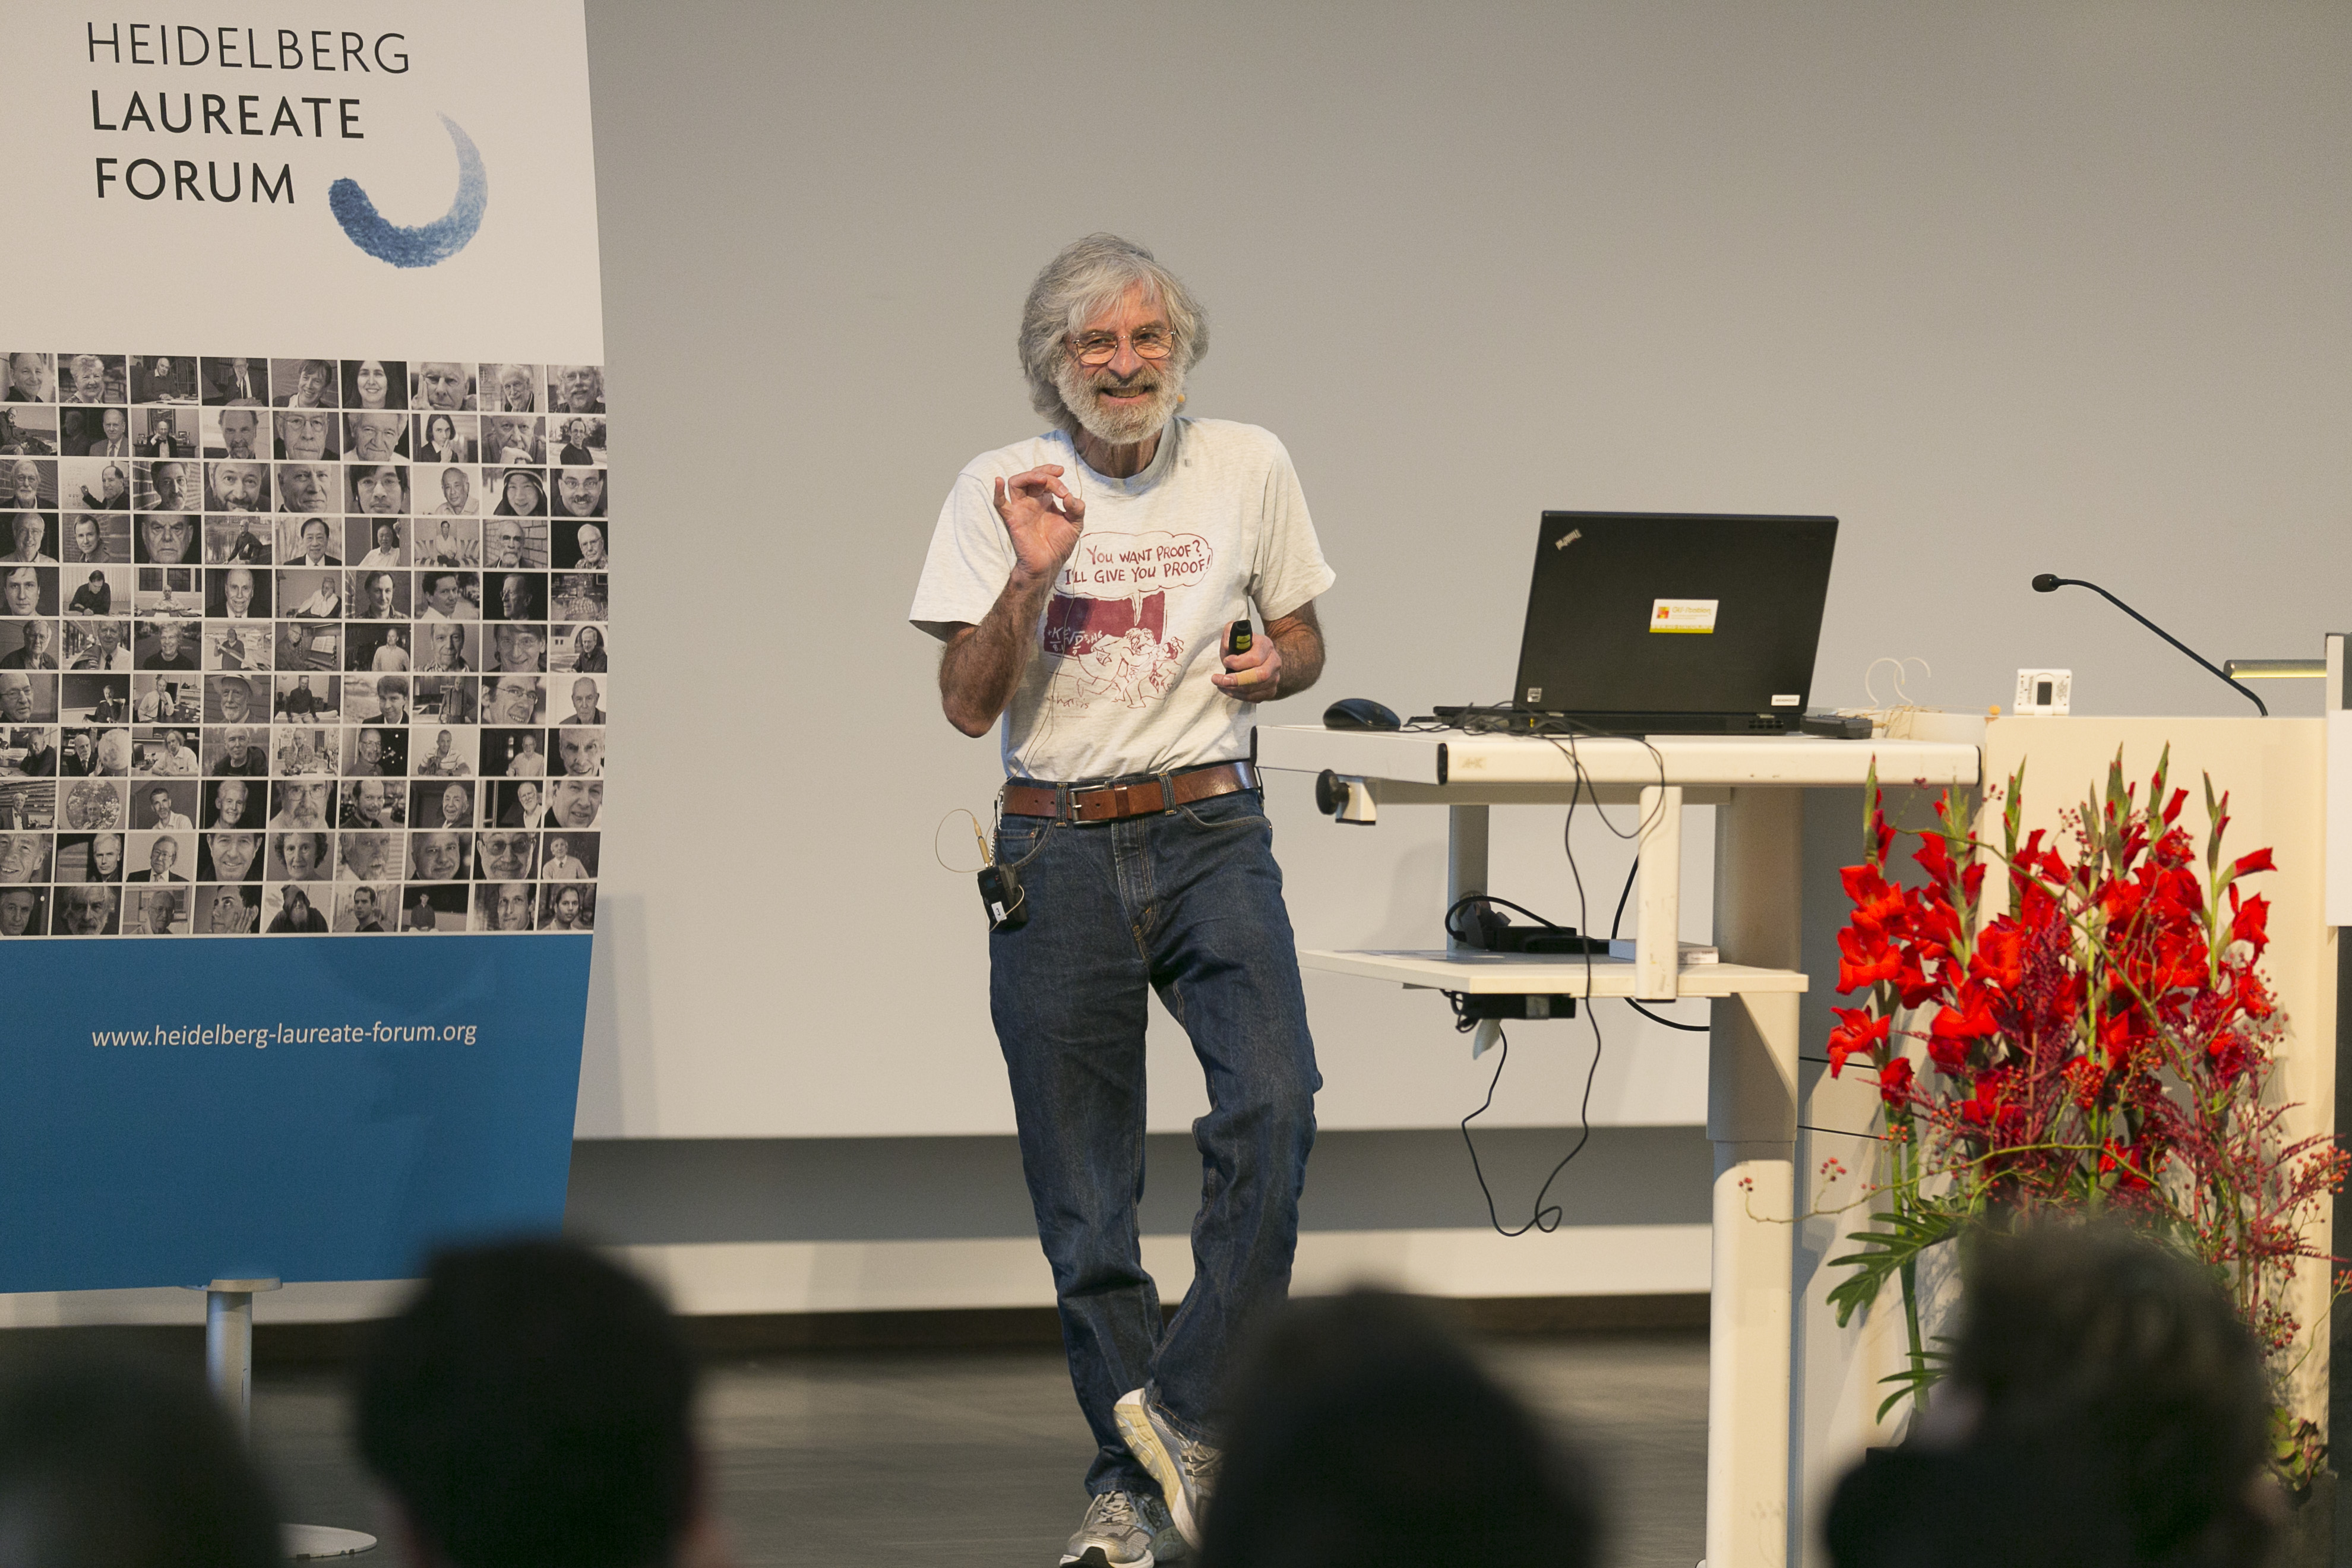 Lecture: Tuesday, September 23, 2014 – Leslie Lamport